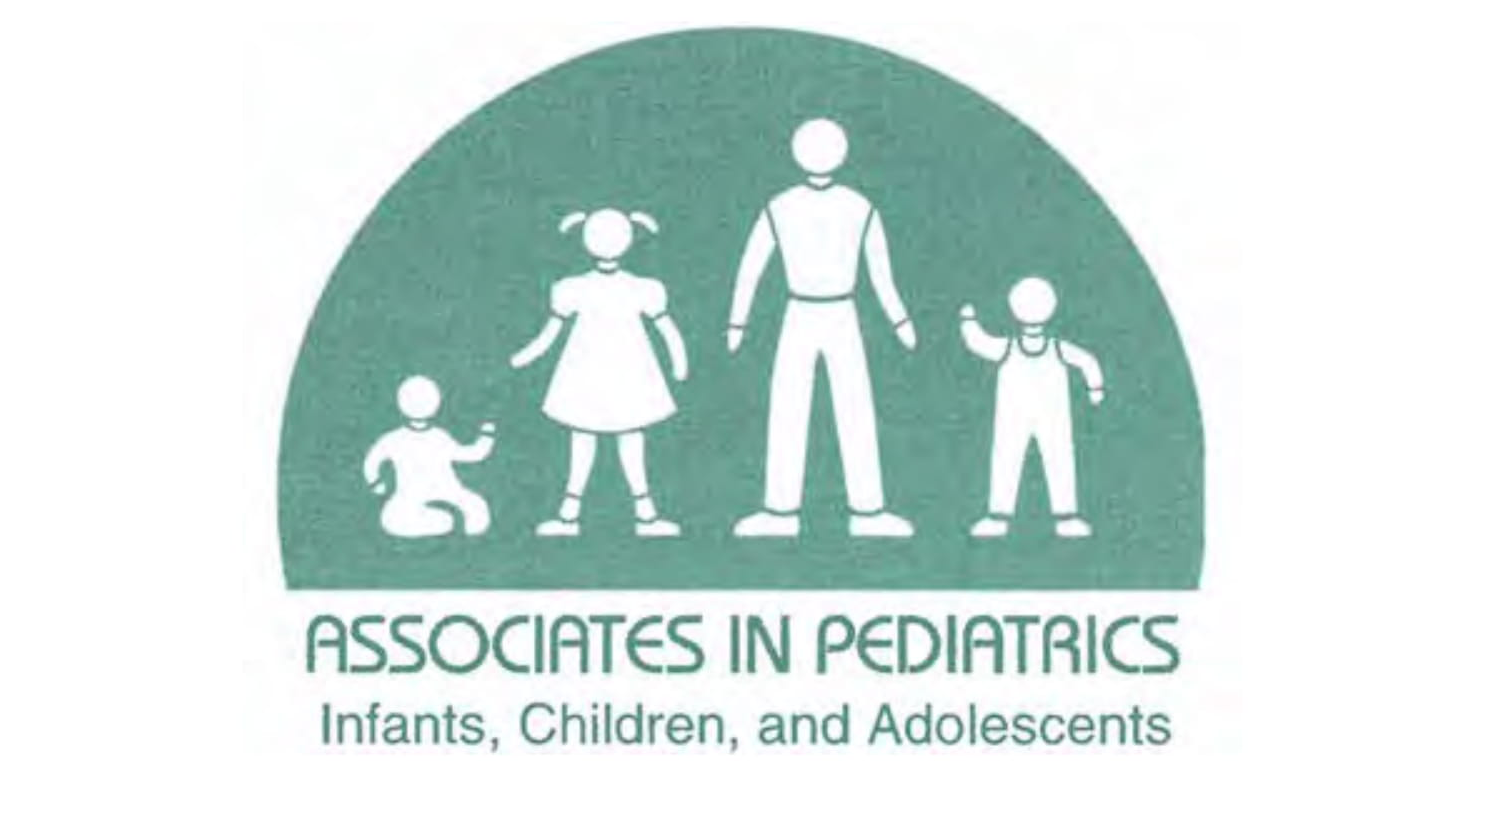 Associates in Pediatrics